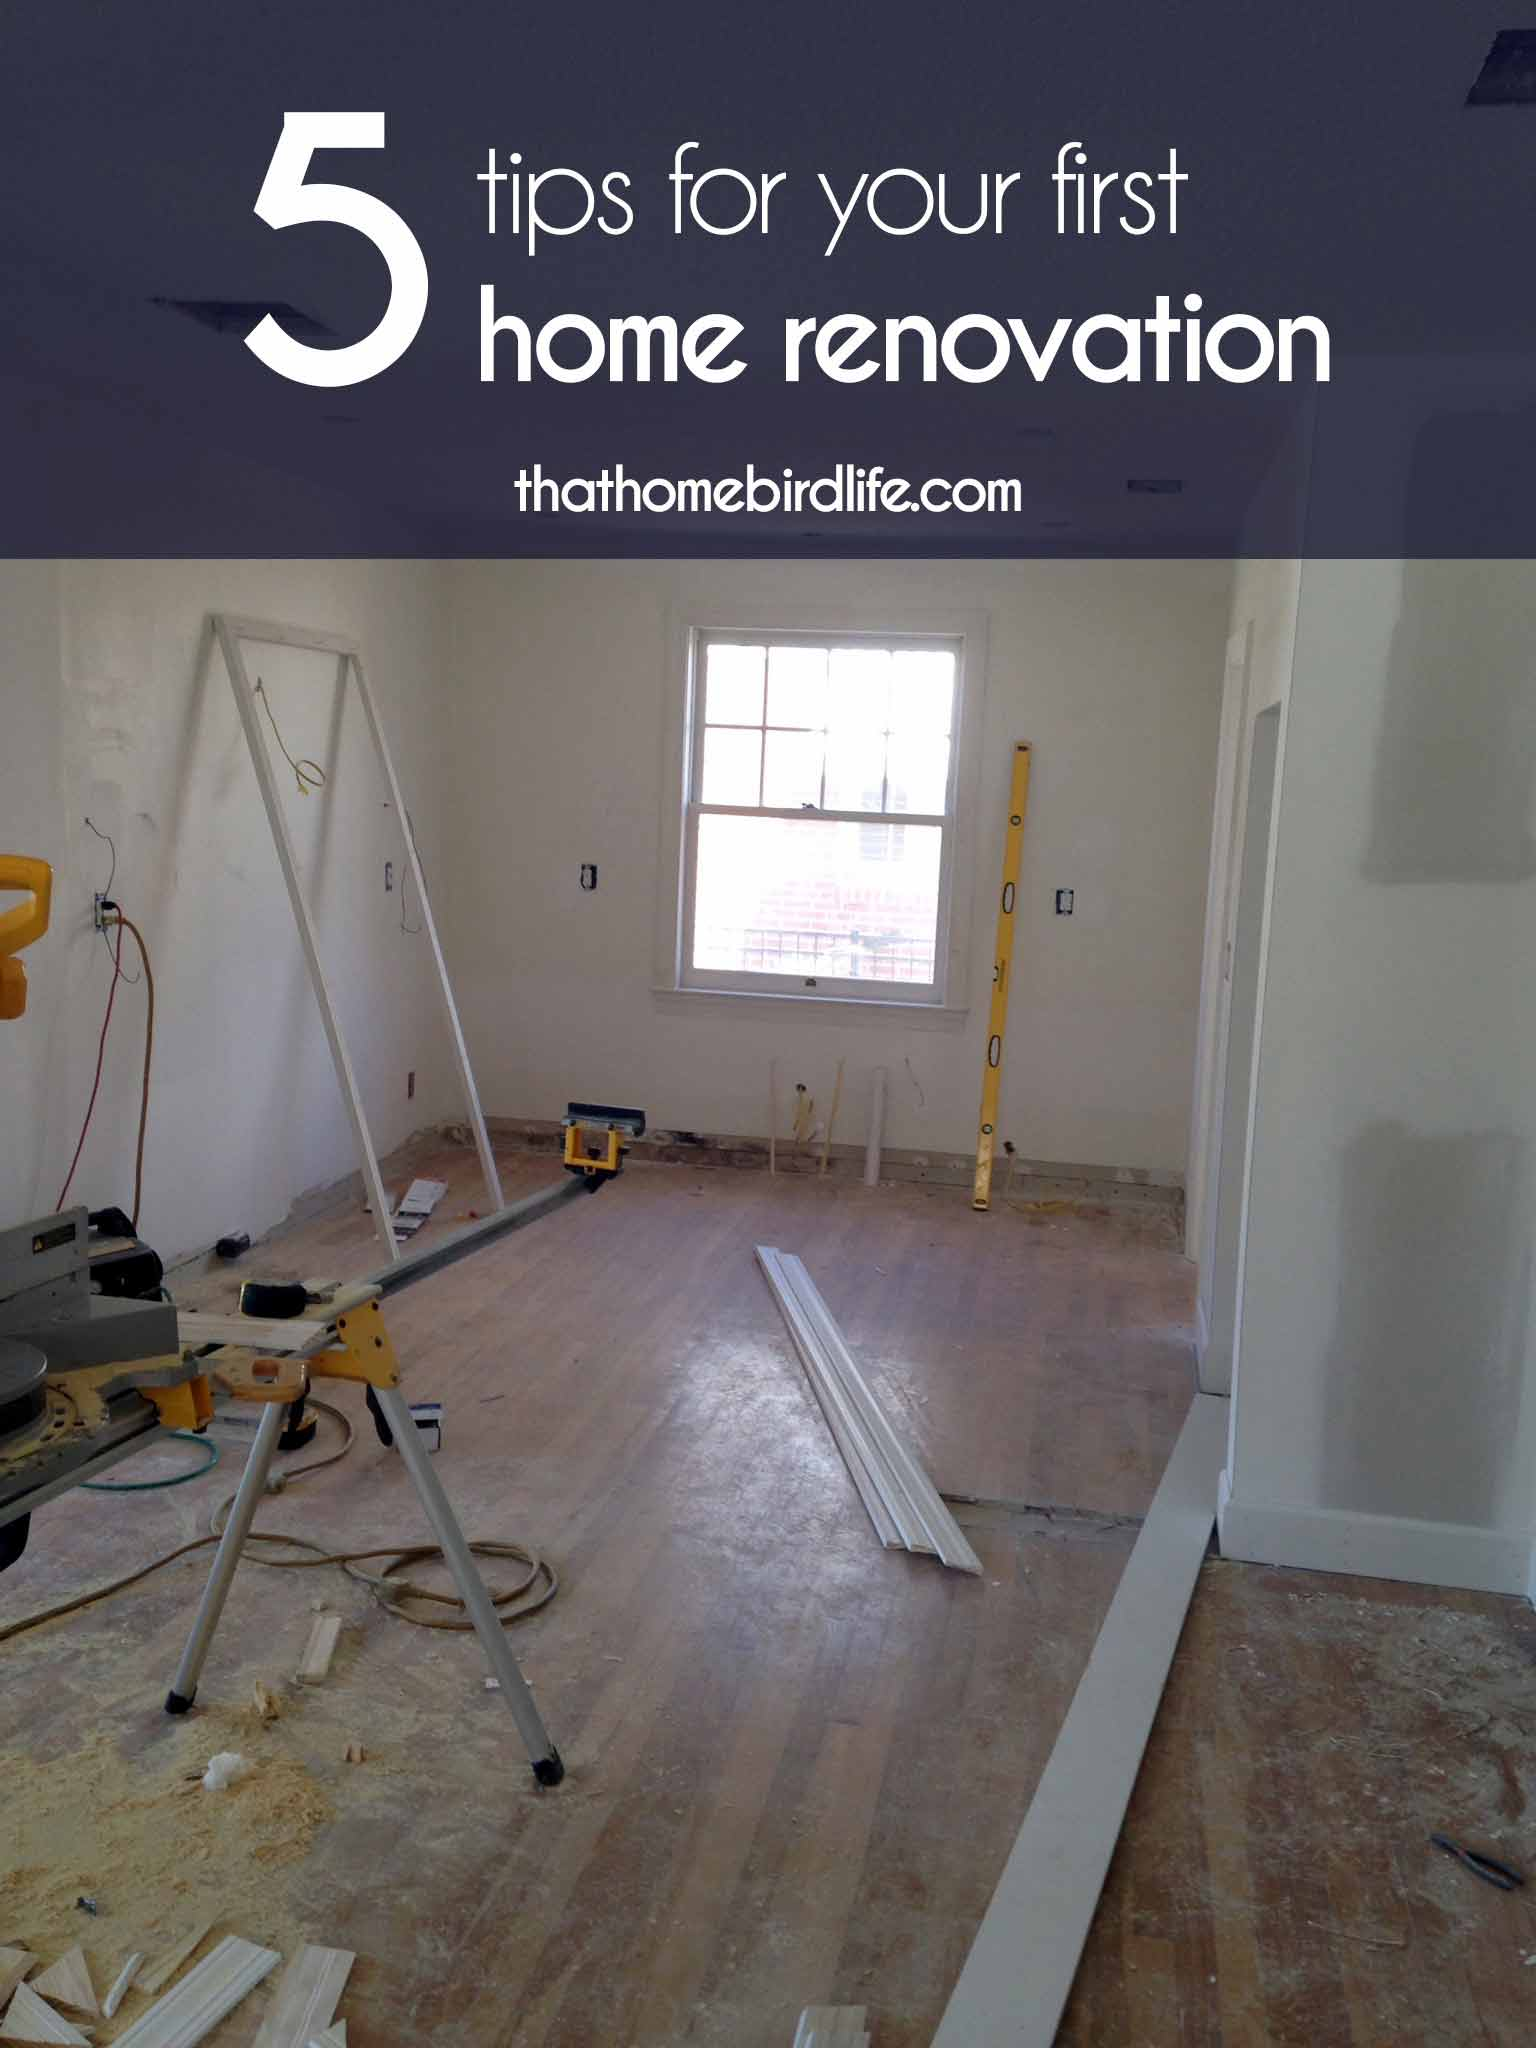 Everyone's renovation experience will look slightly different, depending on the extent of work, personal DIY skills, budget and location. Here are 5 tips for your first home renovation that I think apply to most projects, big or small.